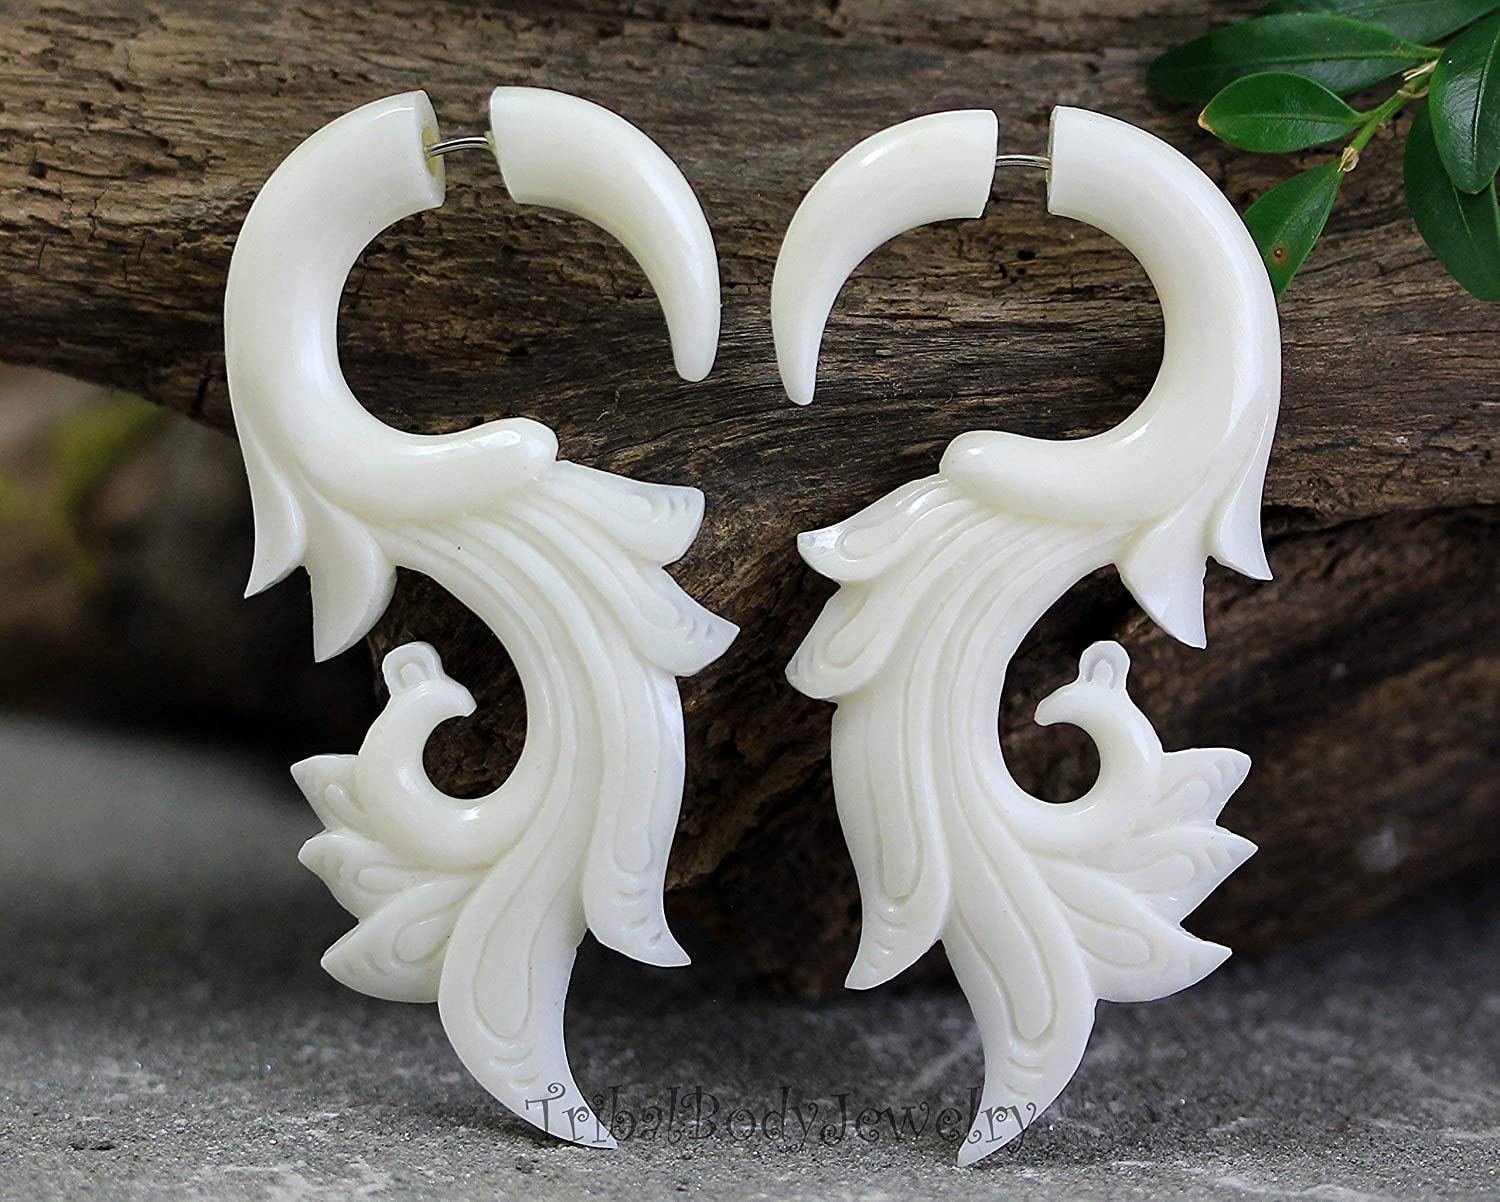 Organic Piercings Carved Bone Cheaters Fake Gauge Earrings Tribal Body Jewelry